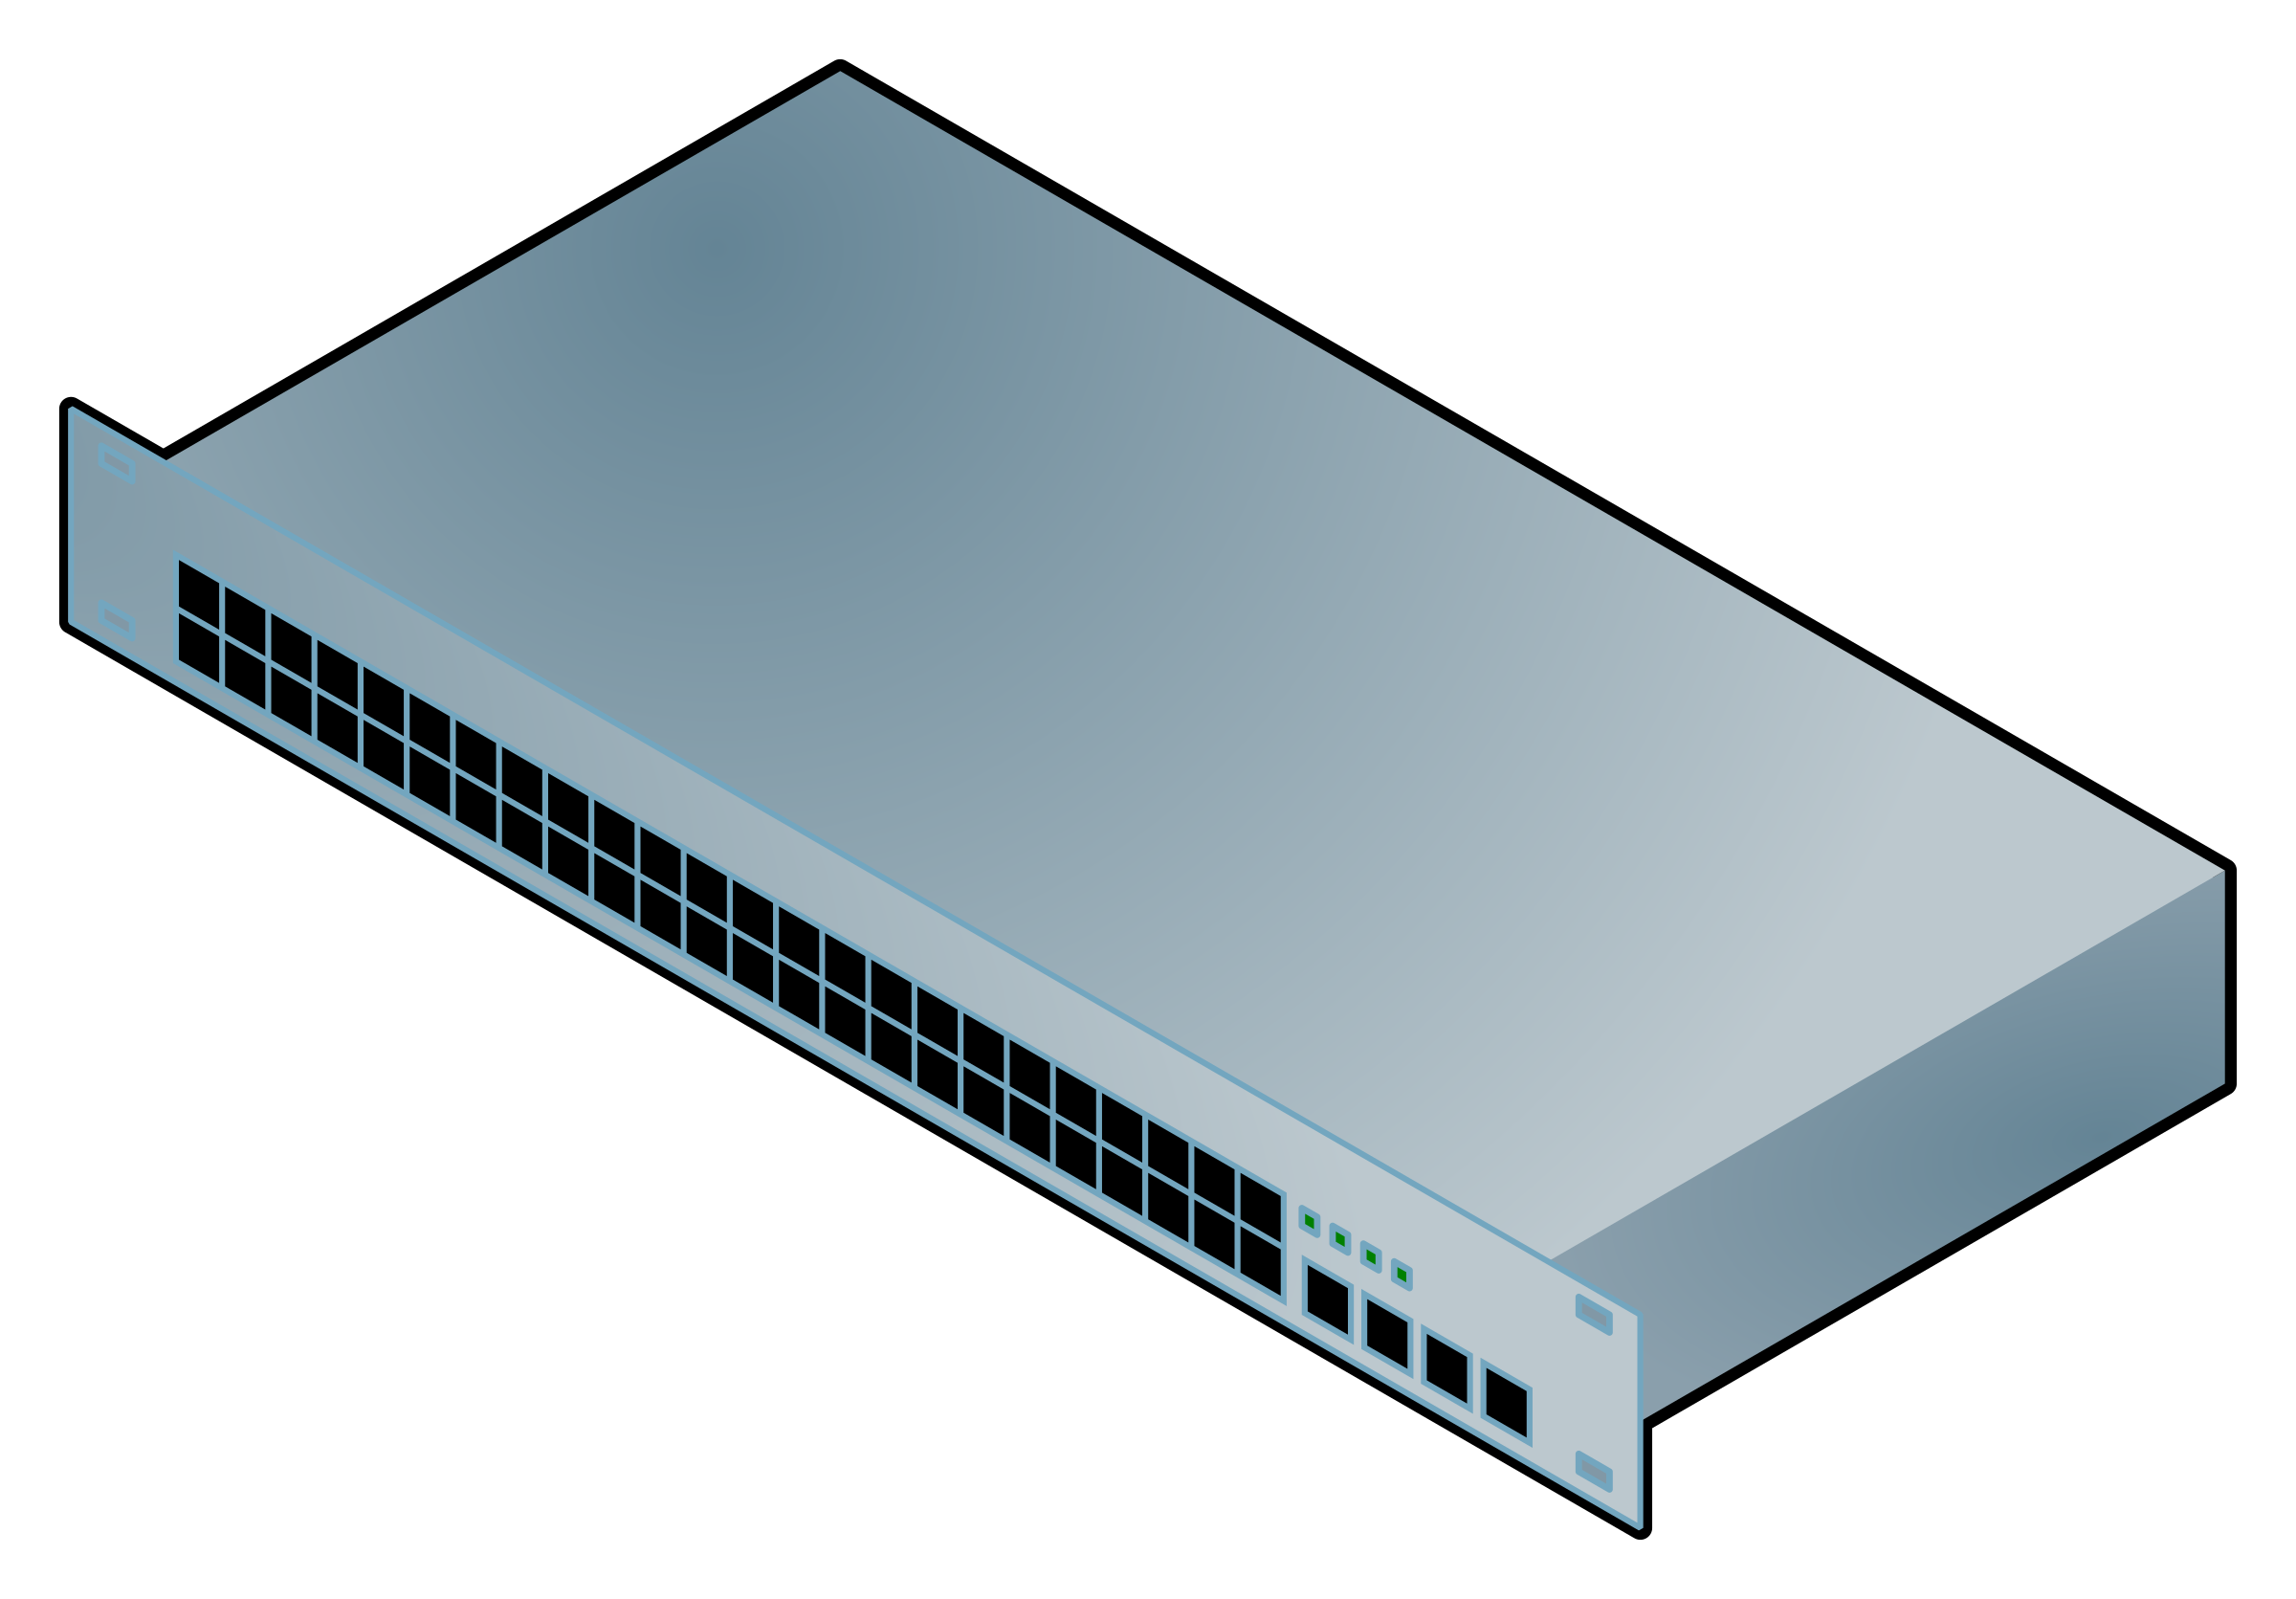 Dell Powerconnect 6248 Switch by Lalitpatanpur